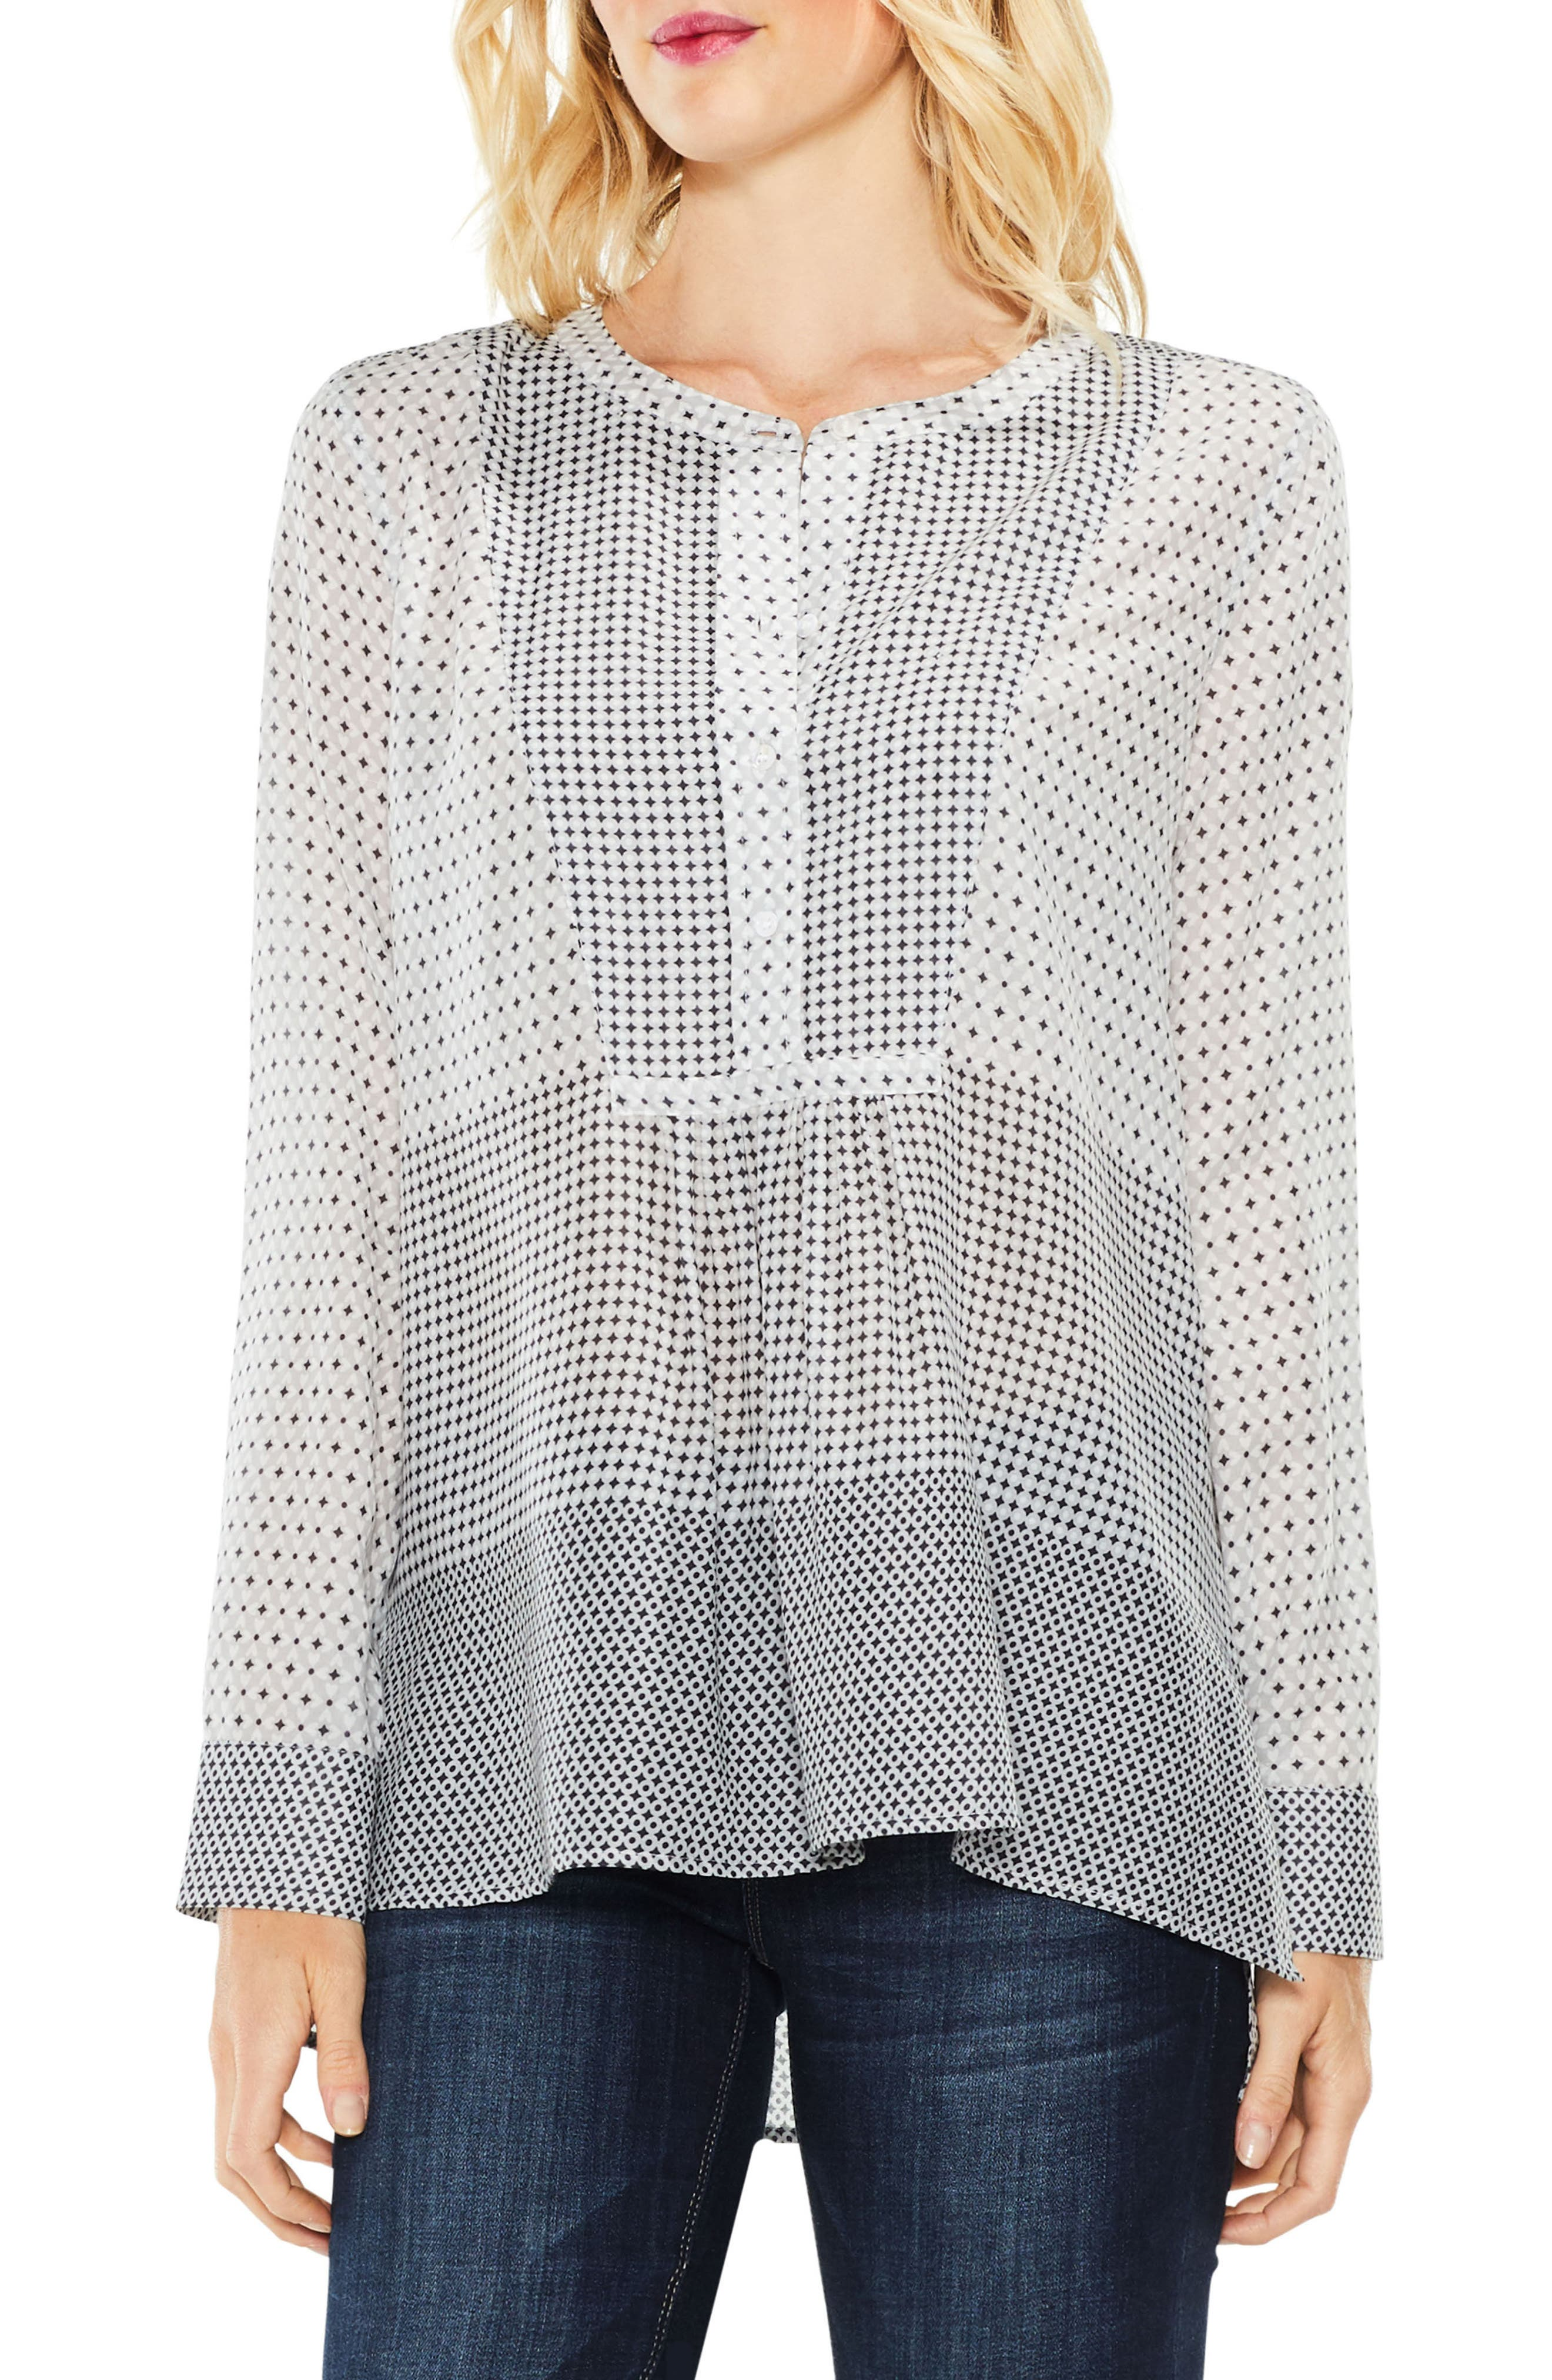 Main Image - Two by Vince Camuto Quiet Tile Border Bib Henley